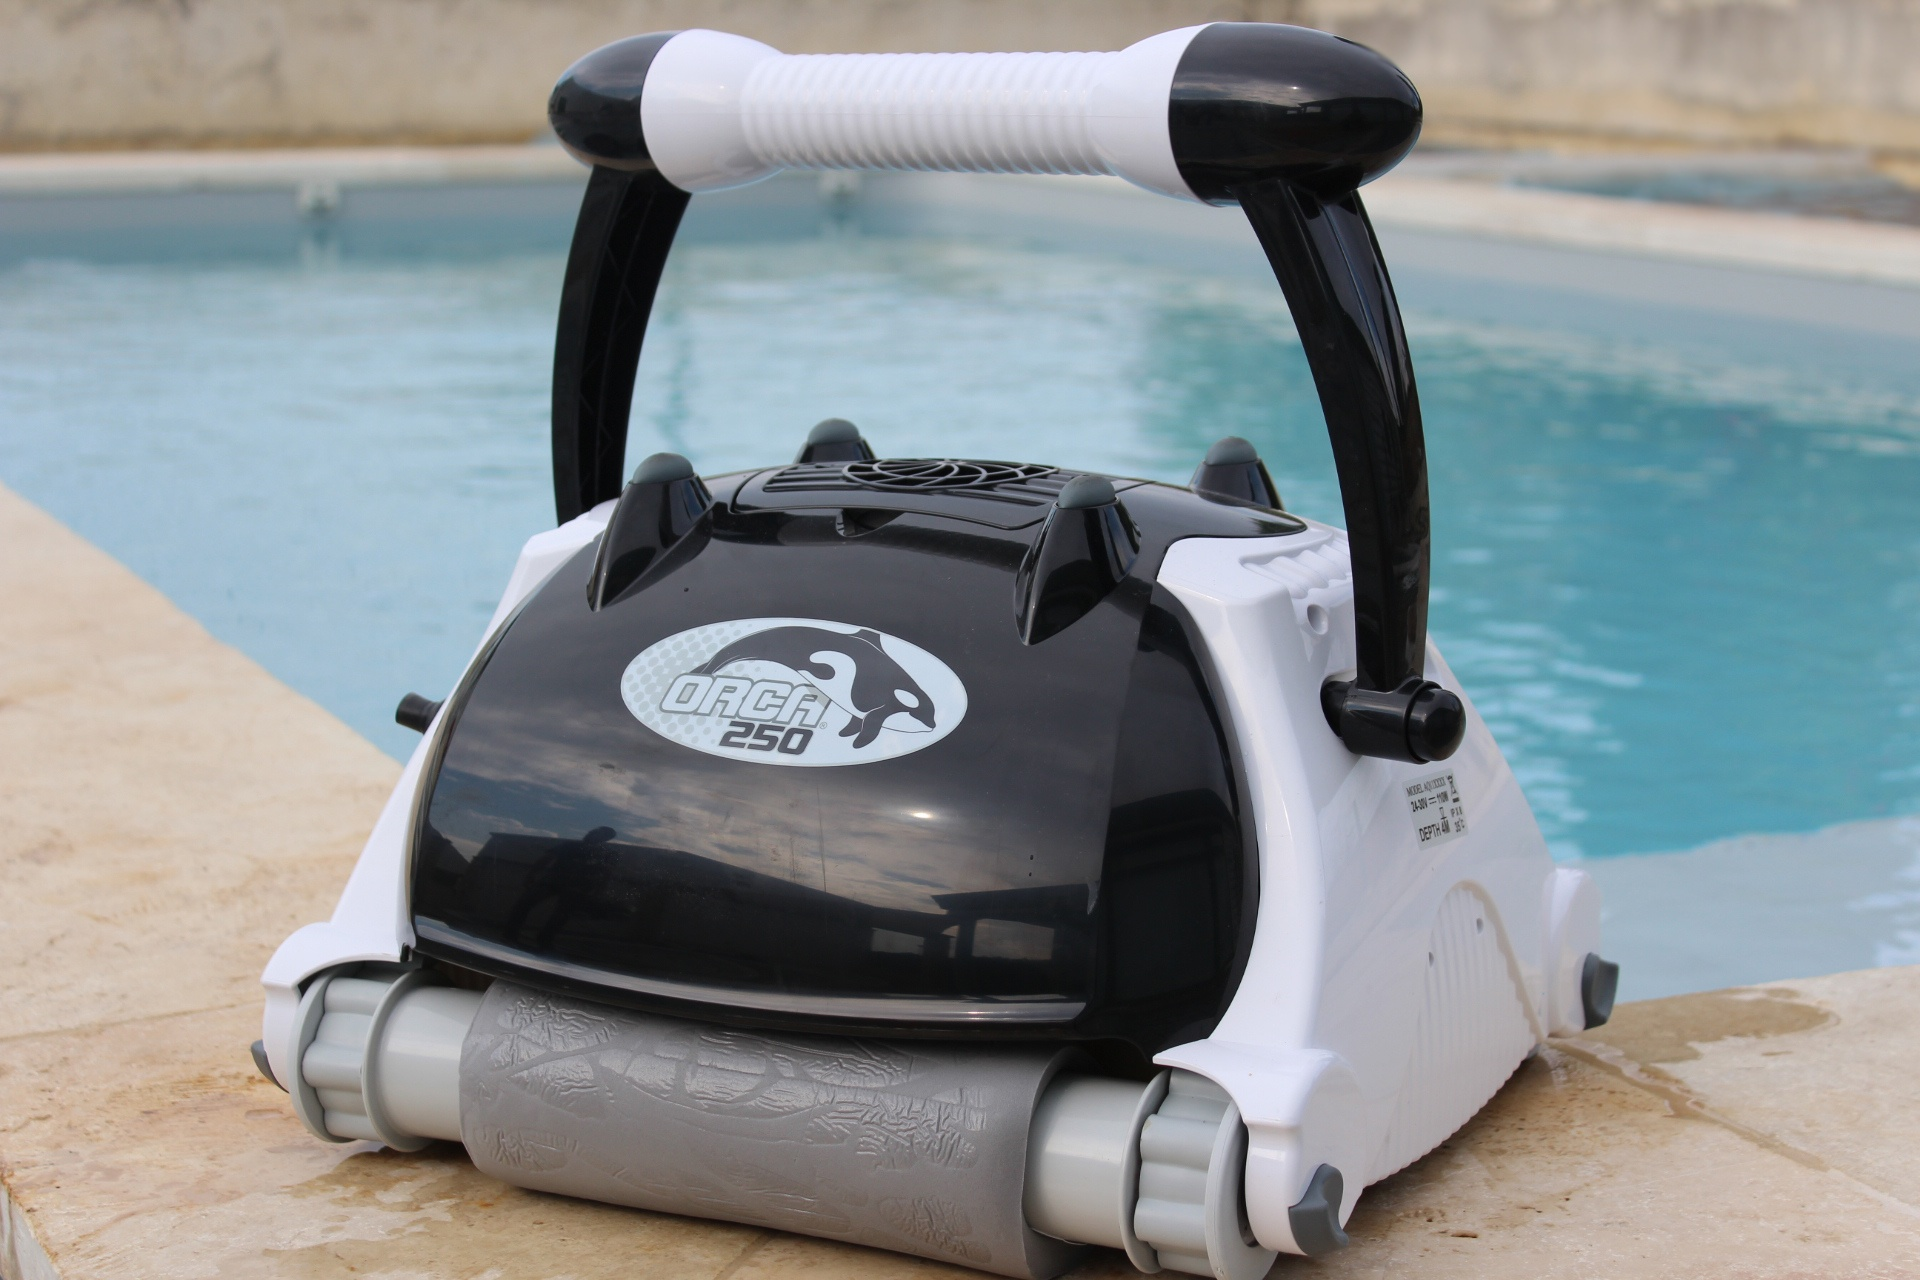 the best pool cleaner orca 250